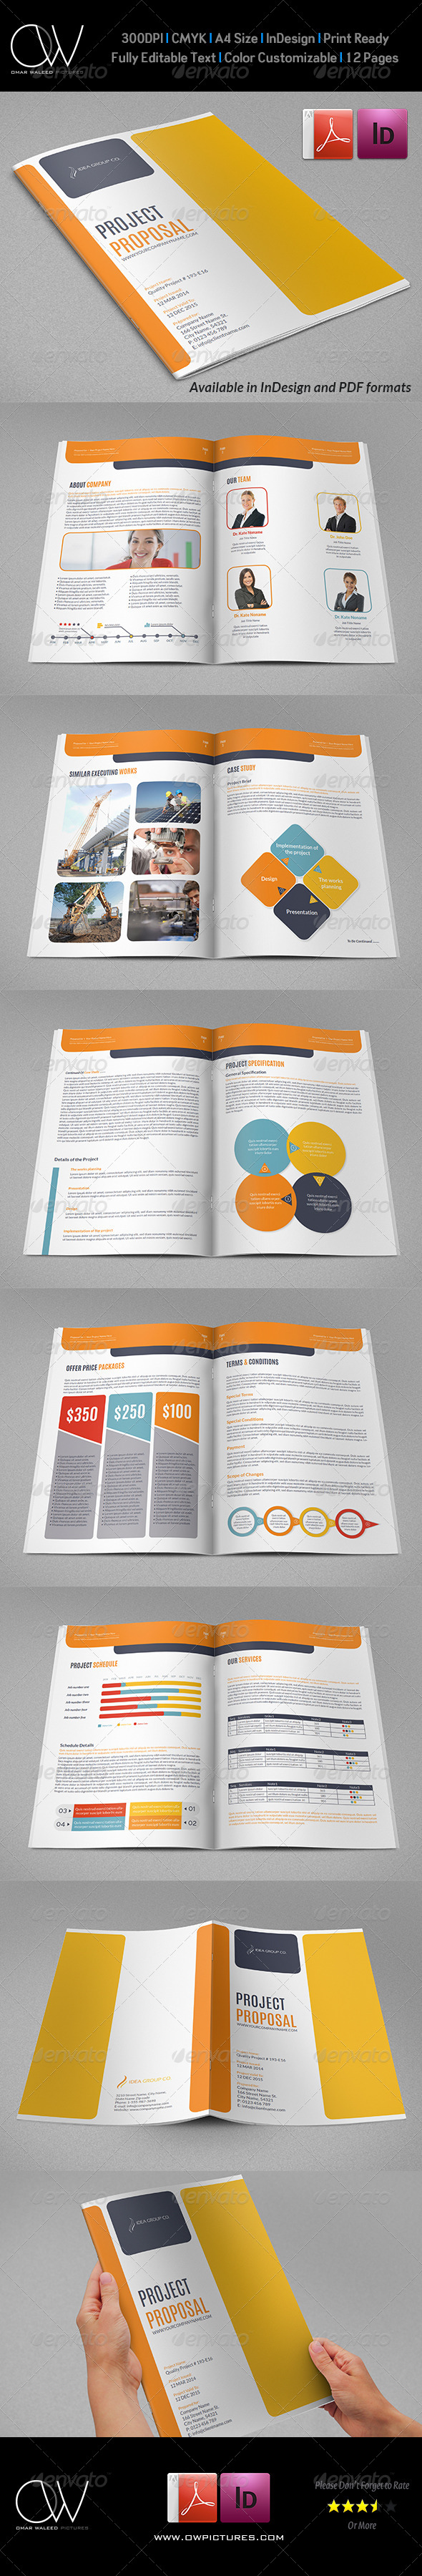 GraphicRiver Company Proposal Template Vol.2 7403531